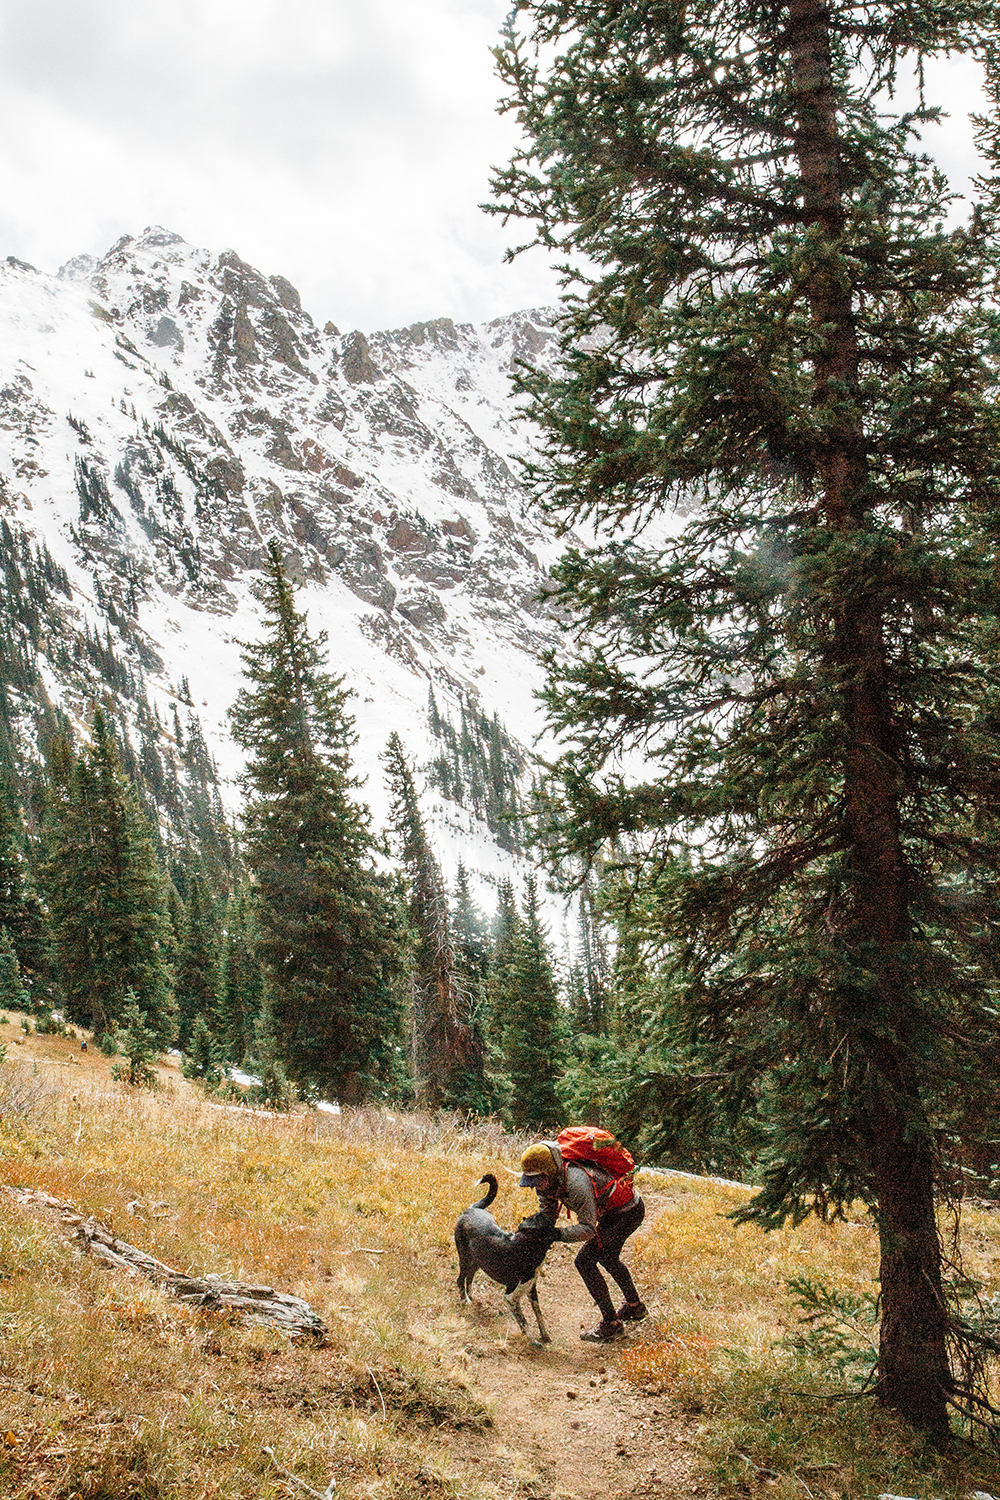 Best cities to live in Colorado: woman pets her dog in the forest with snowy mountains in the background